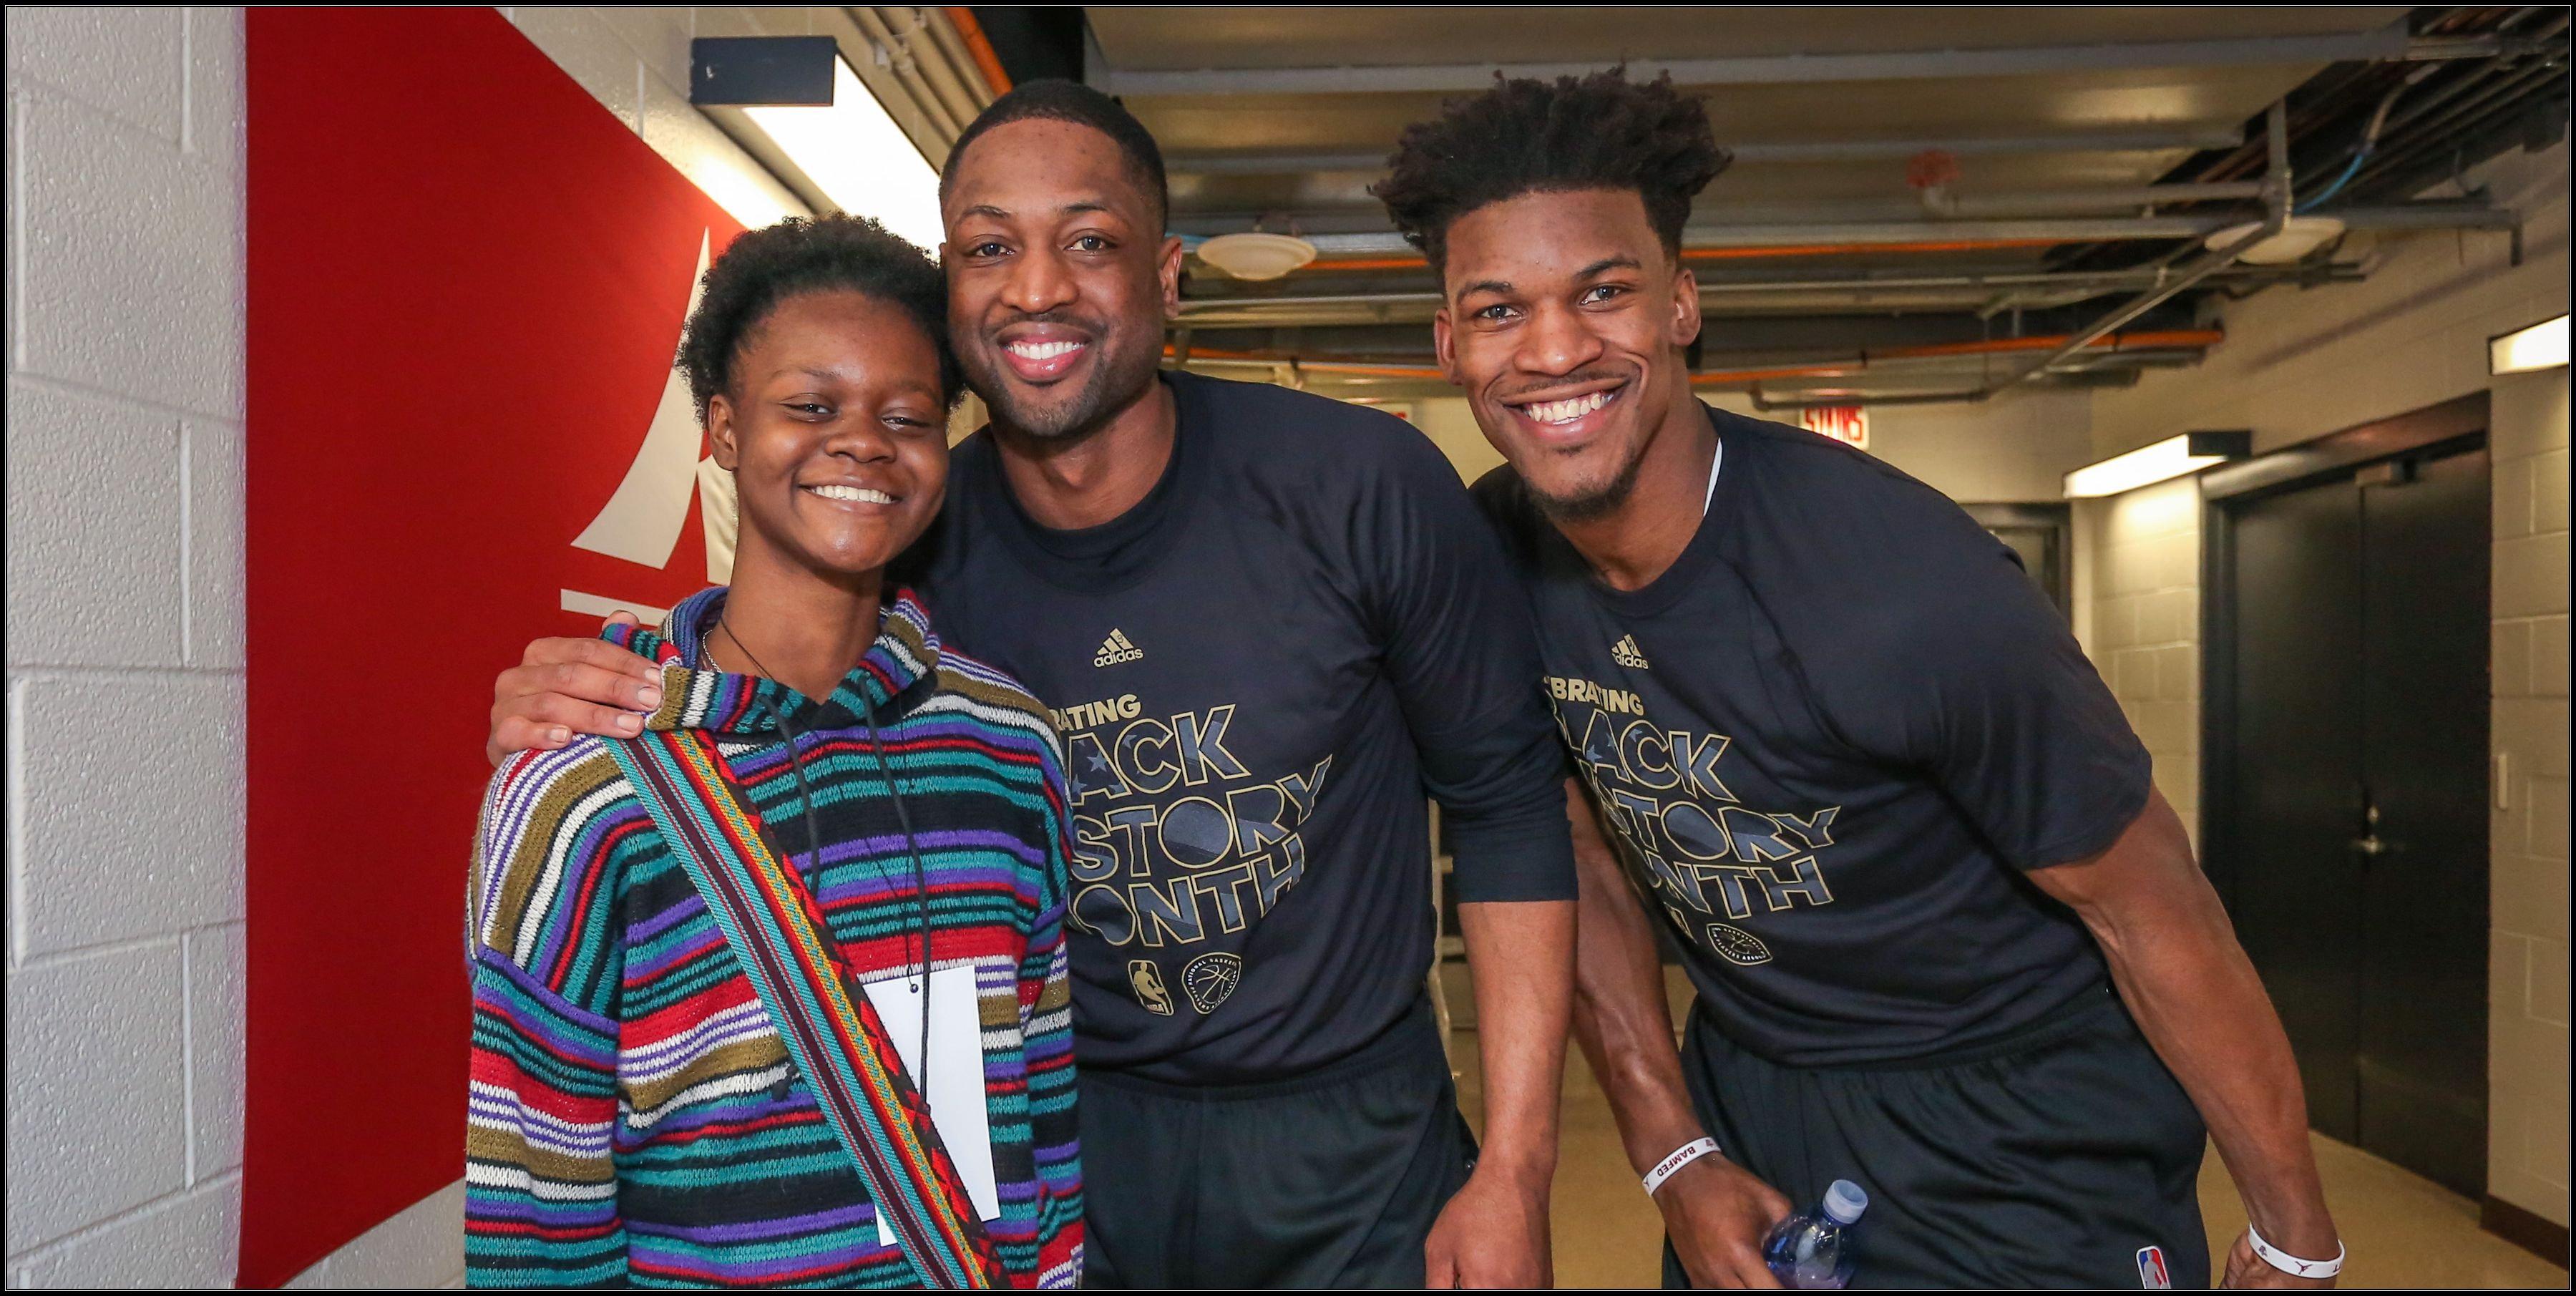 Chicago Bulls' Jimmy Butler and Dwayne Wade Nominated for 2016-2017 Seasonlong NBA Cares Community Assist Award